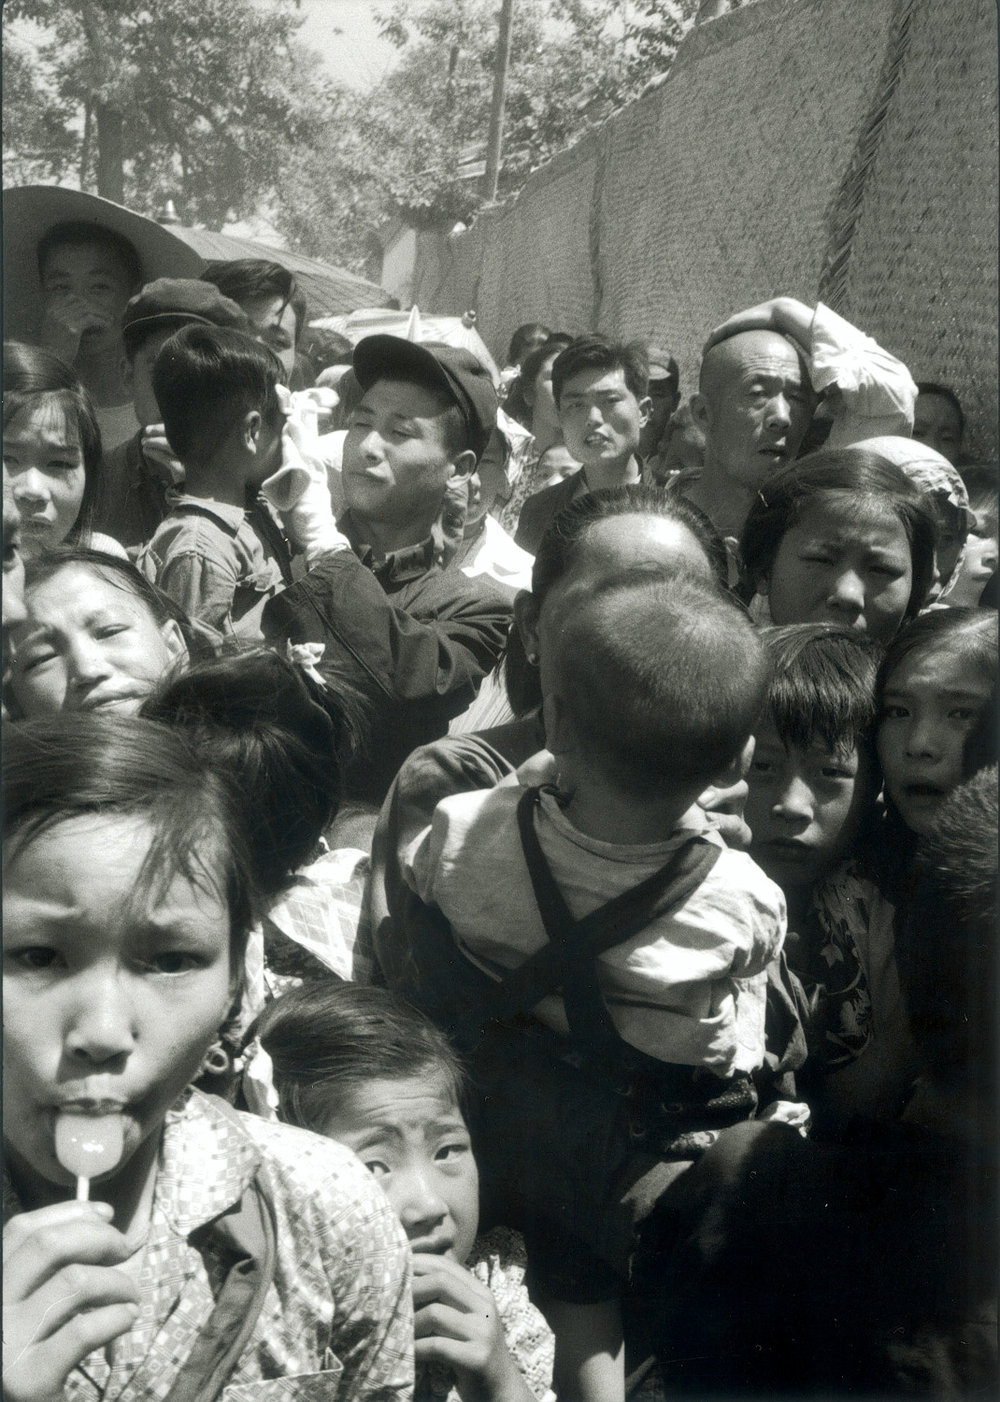 A crowd on a hot day at a peasant's fair in a country village near Peking. China, 1956.  (RDH C031-10a)